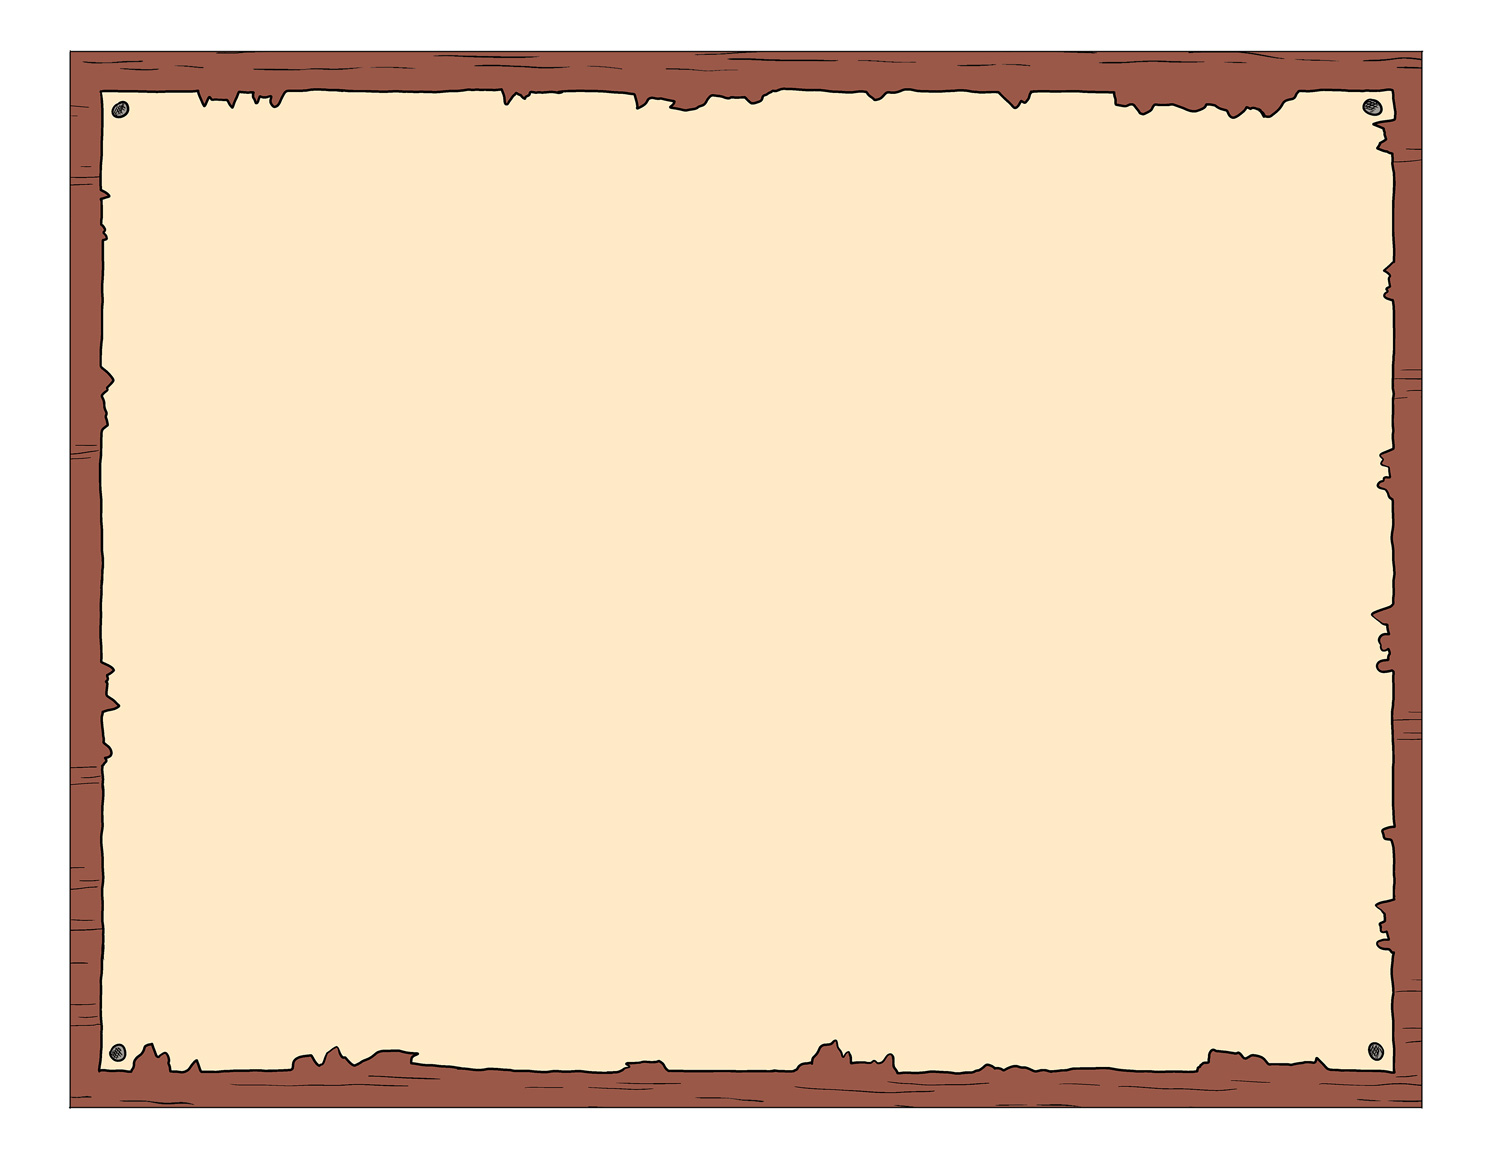 Treasure Map Blank - ClipArt Best